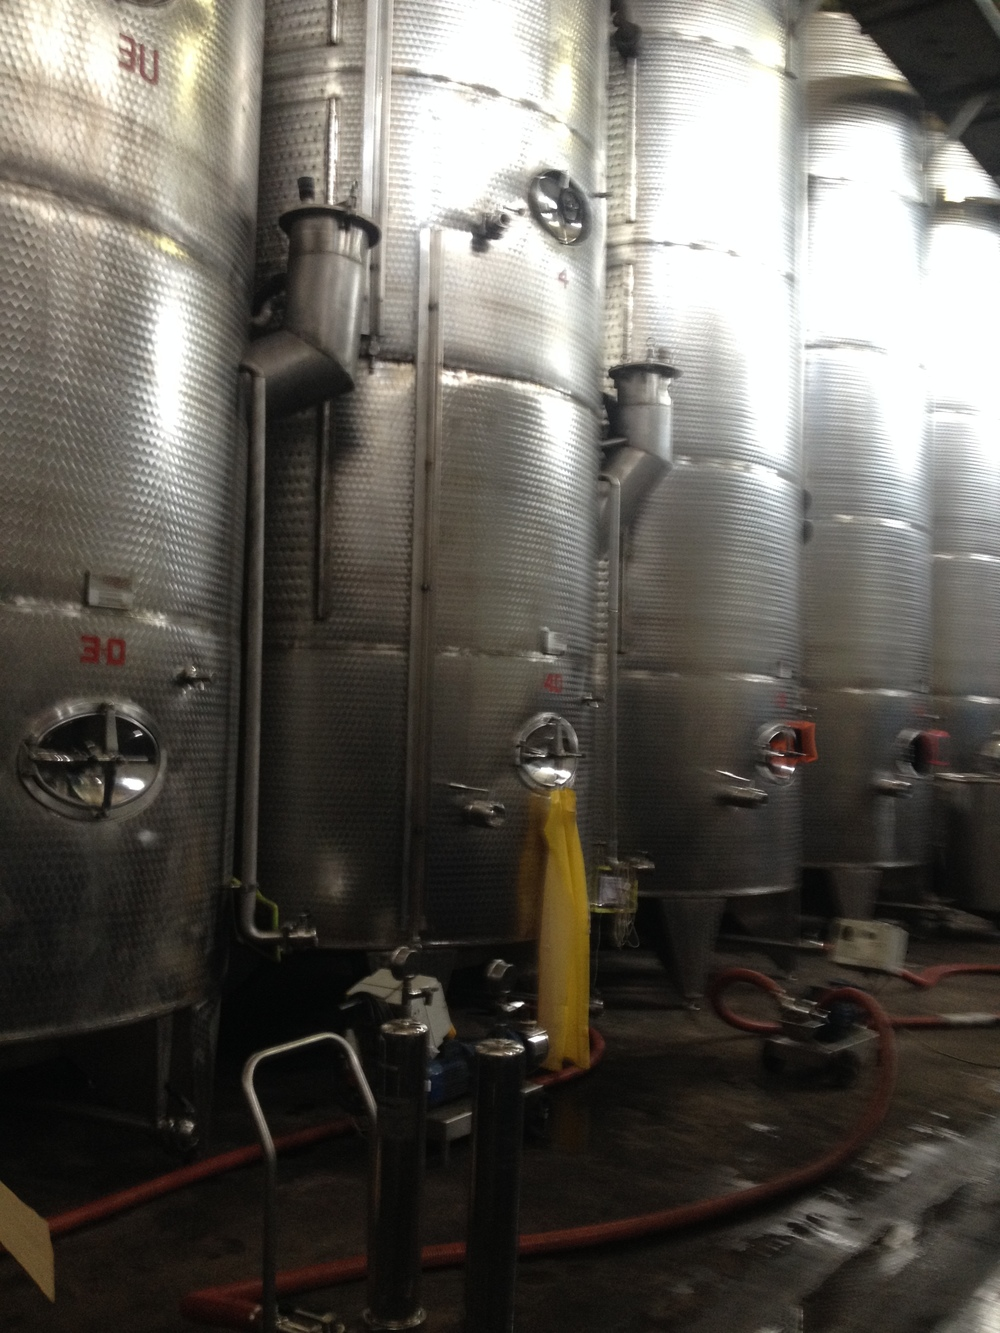 Stainless steele vats